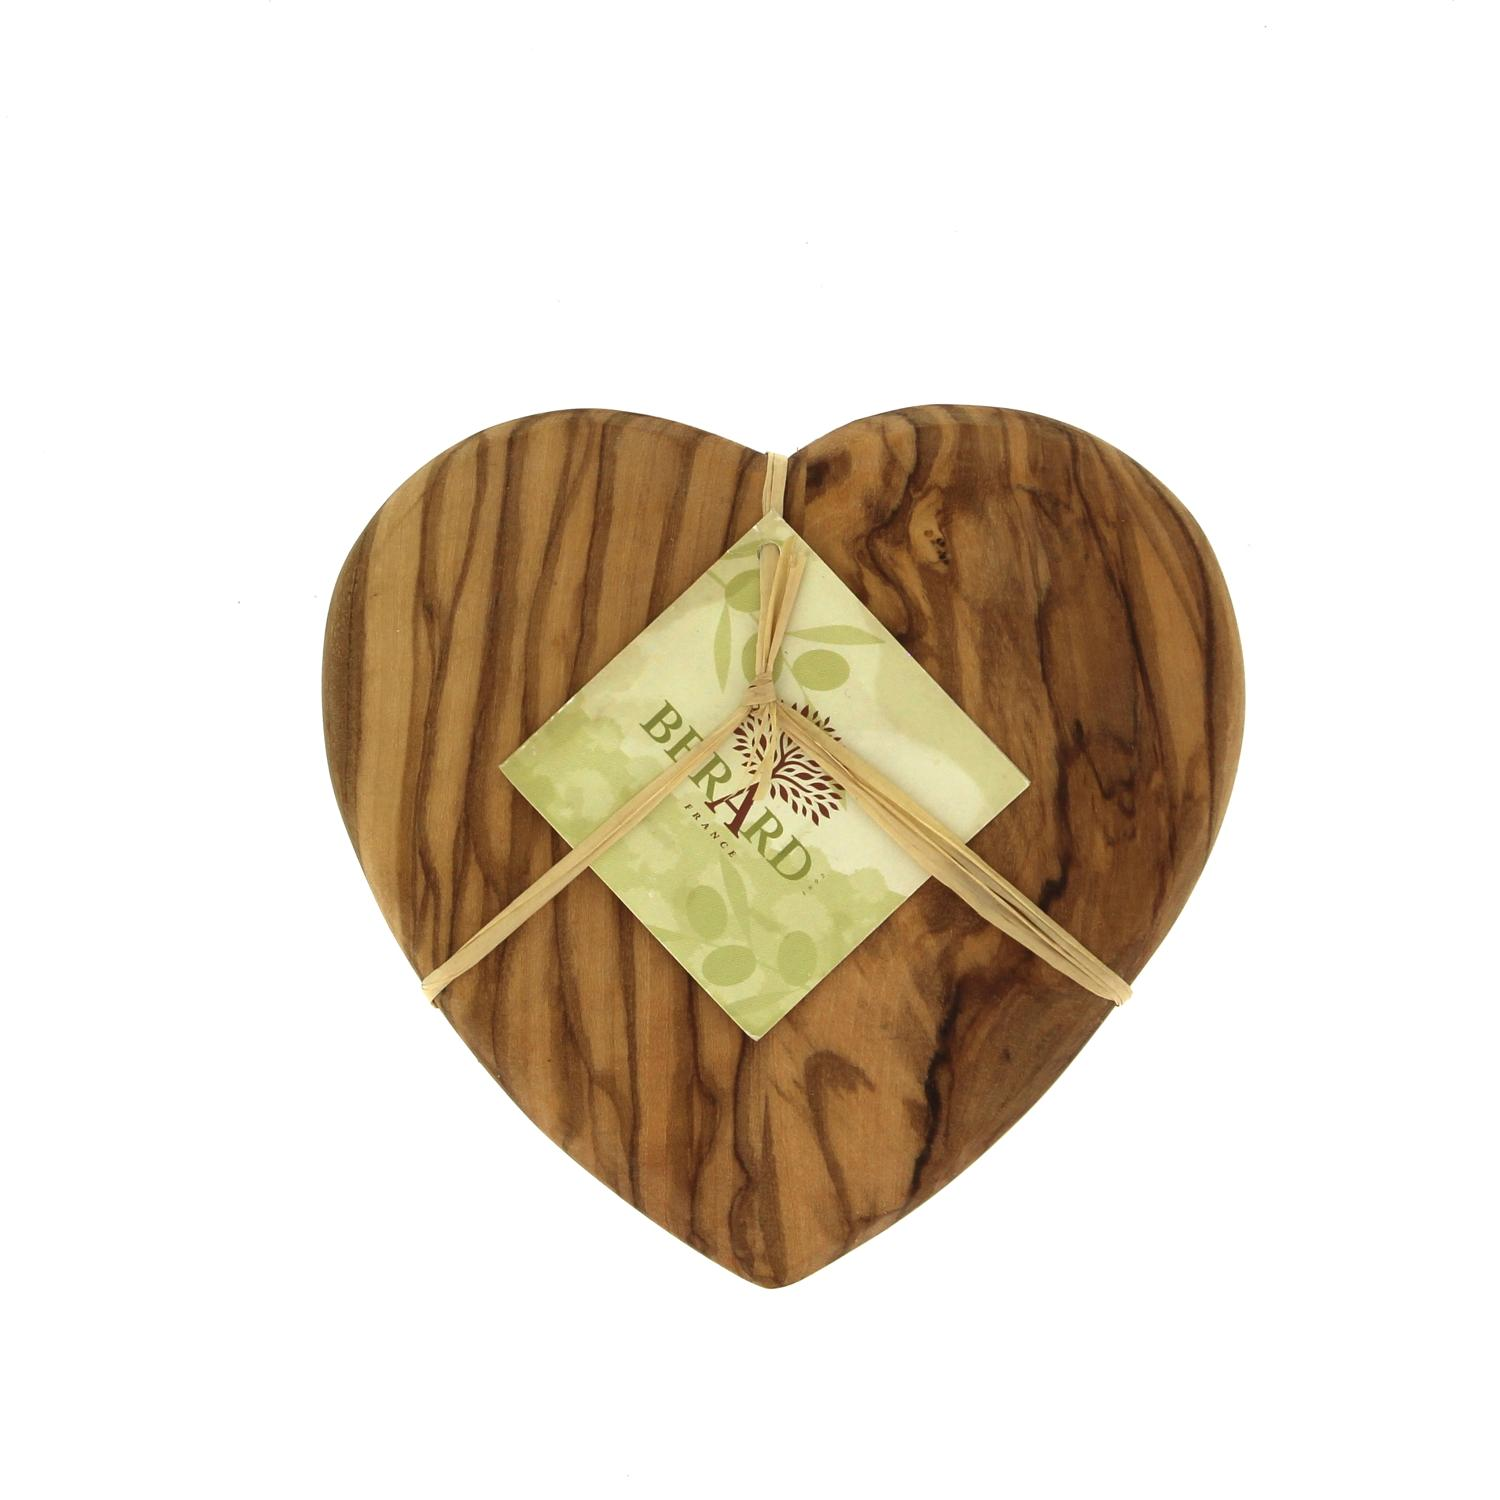 HEART Olive wood Chopping Board - Large